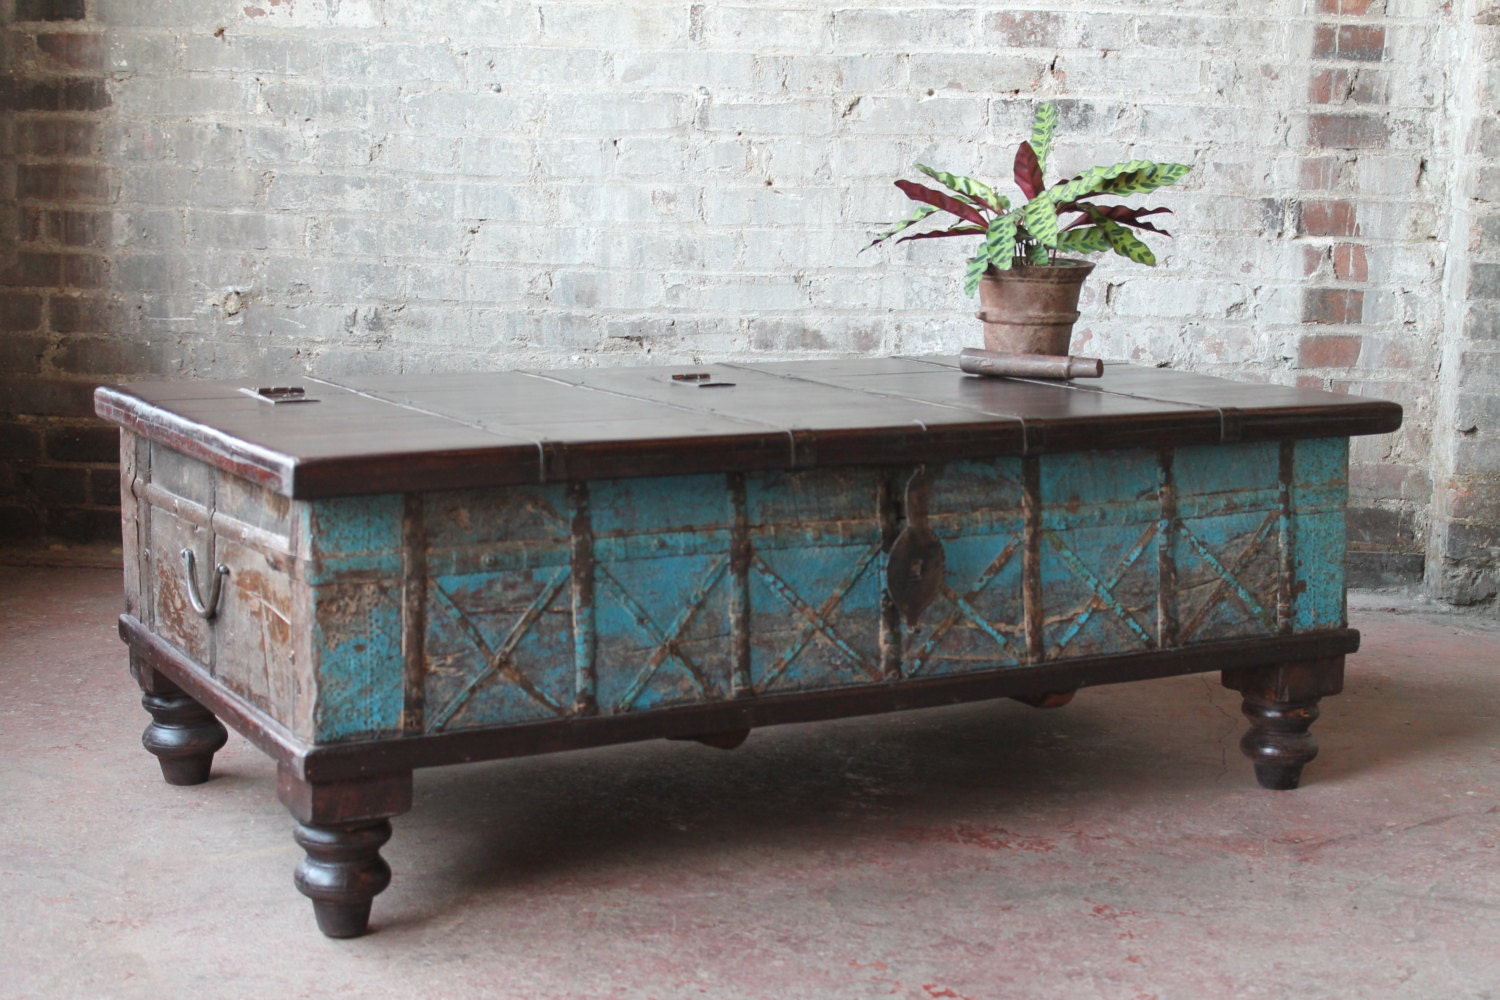 Reclaimed Trunk Coffee Table Rust And Jade Green Iron And: indian trunk coffee table